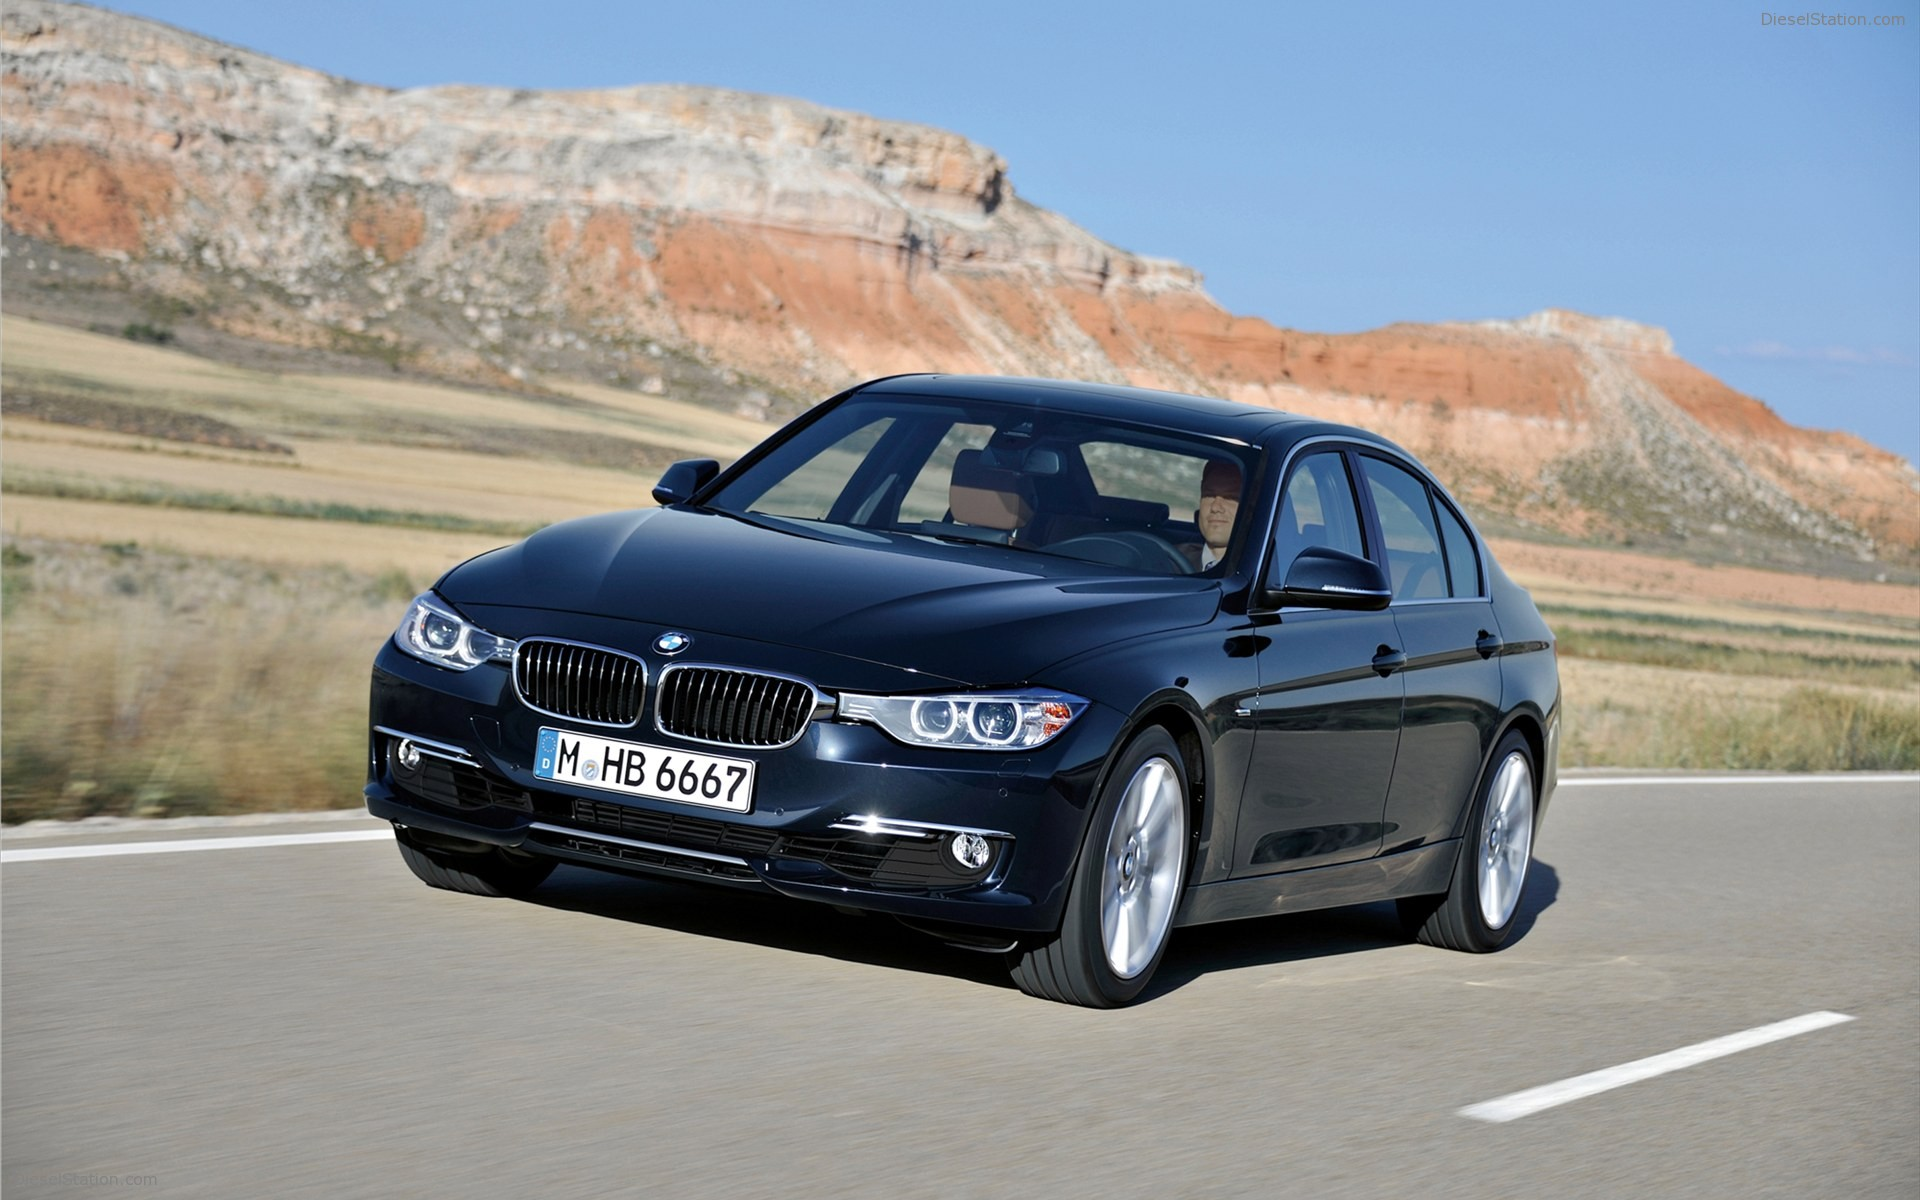 BMW 3 series 335i 2012 photo - 7